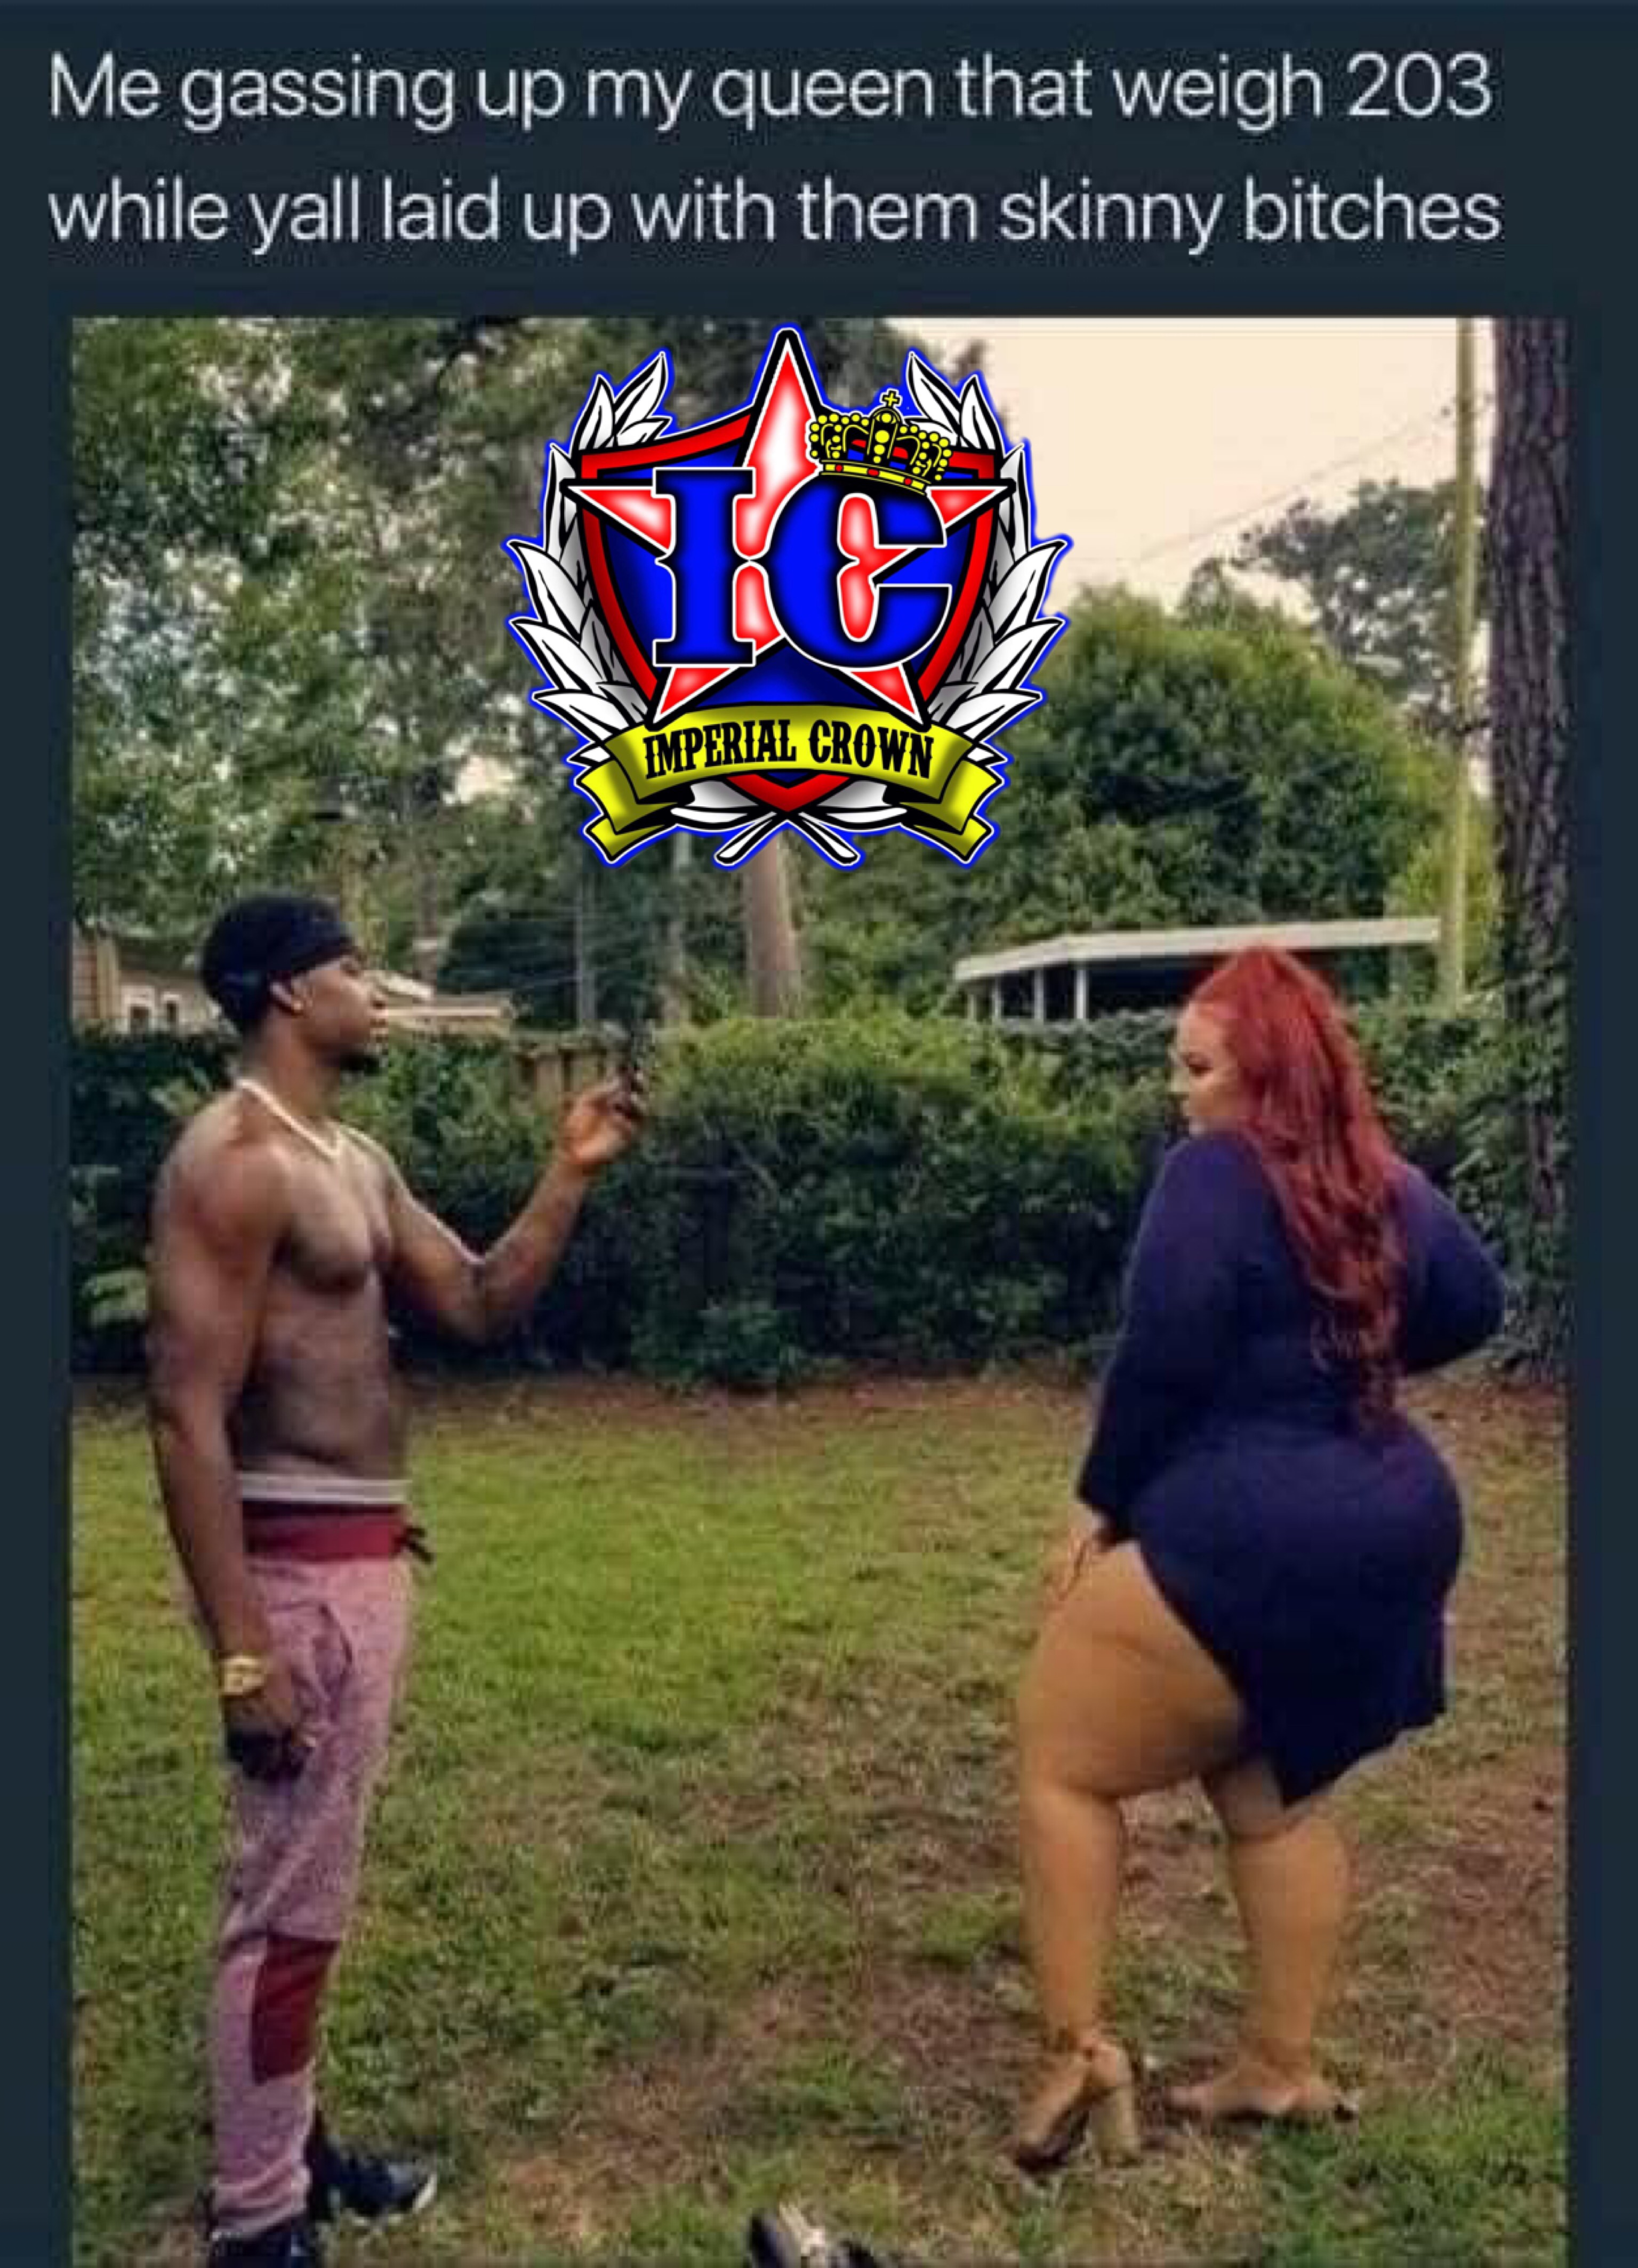 Me gassing up my queen that weigh 203 while y'all laid up with them skinny bitches